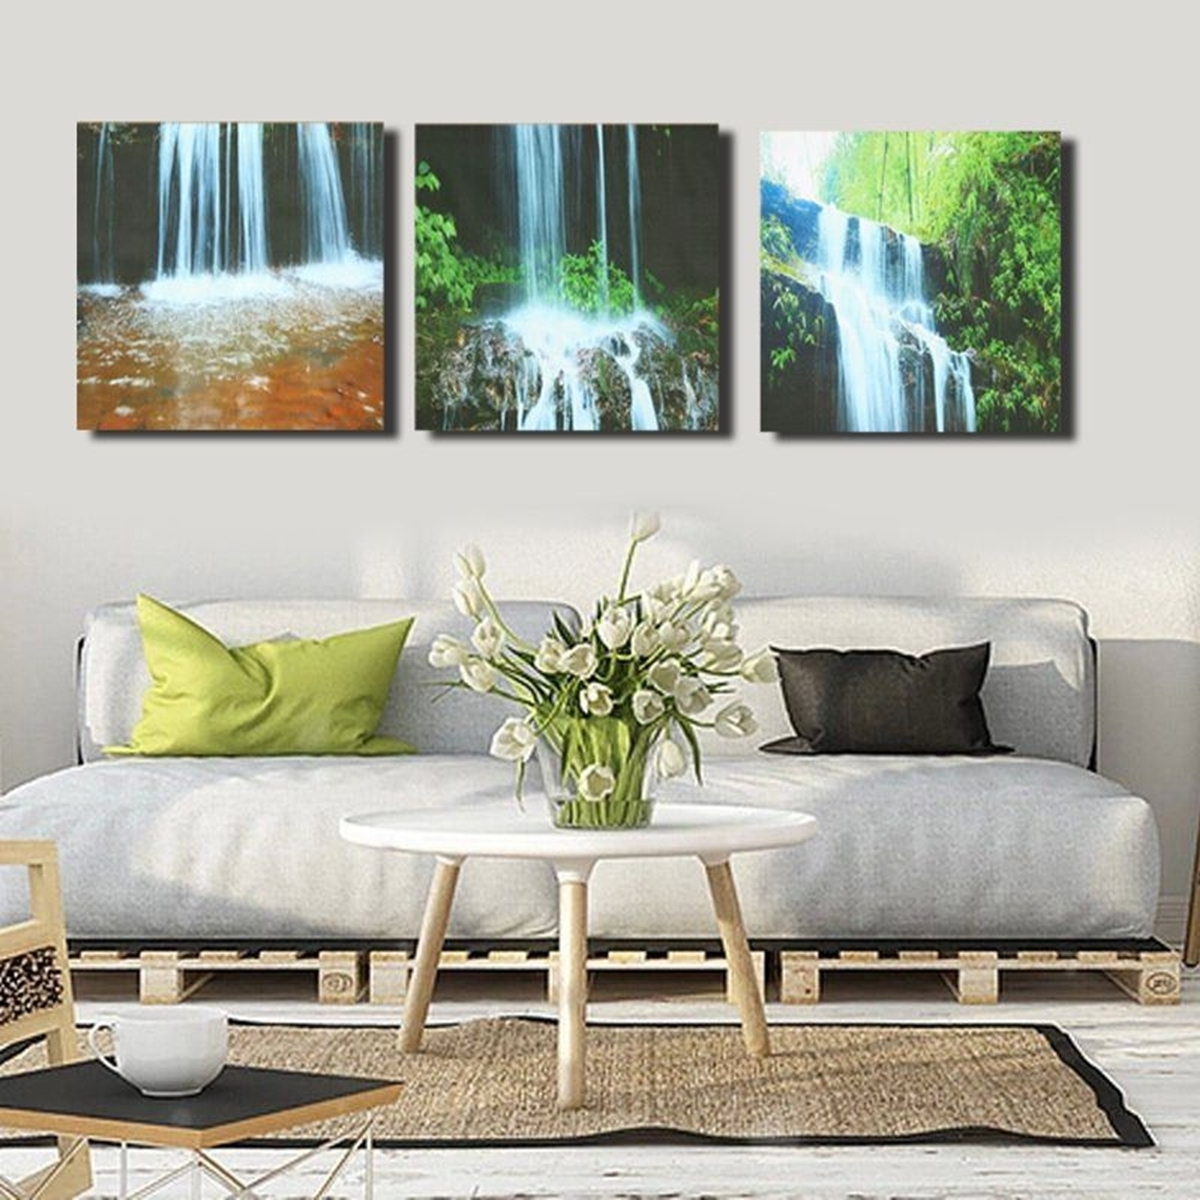 Gallery of Living Room Canvas Wall Art (View 15 of 15 Photos)